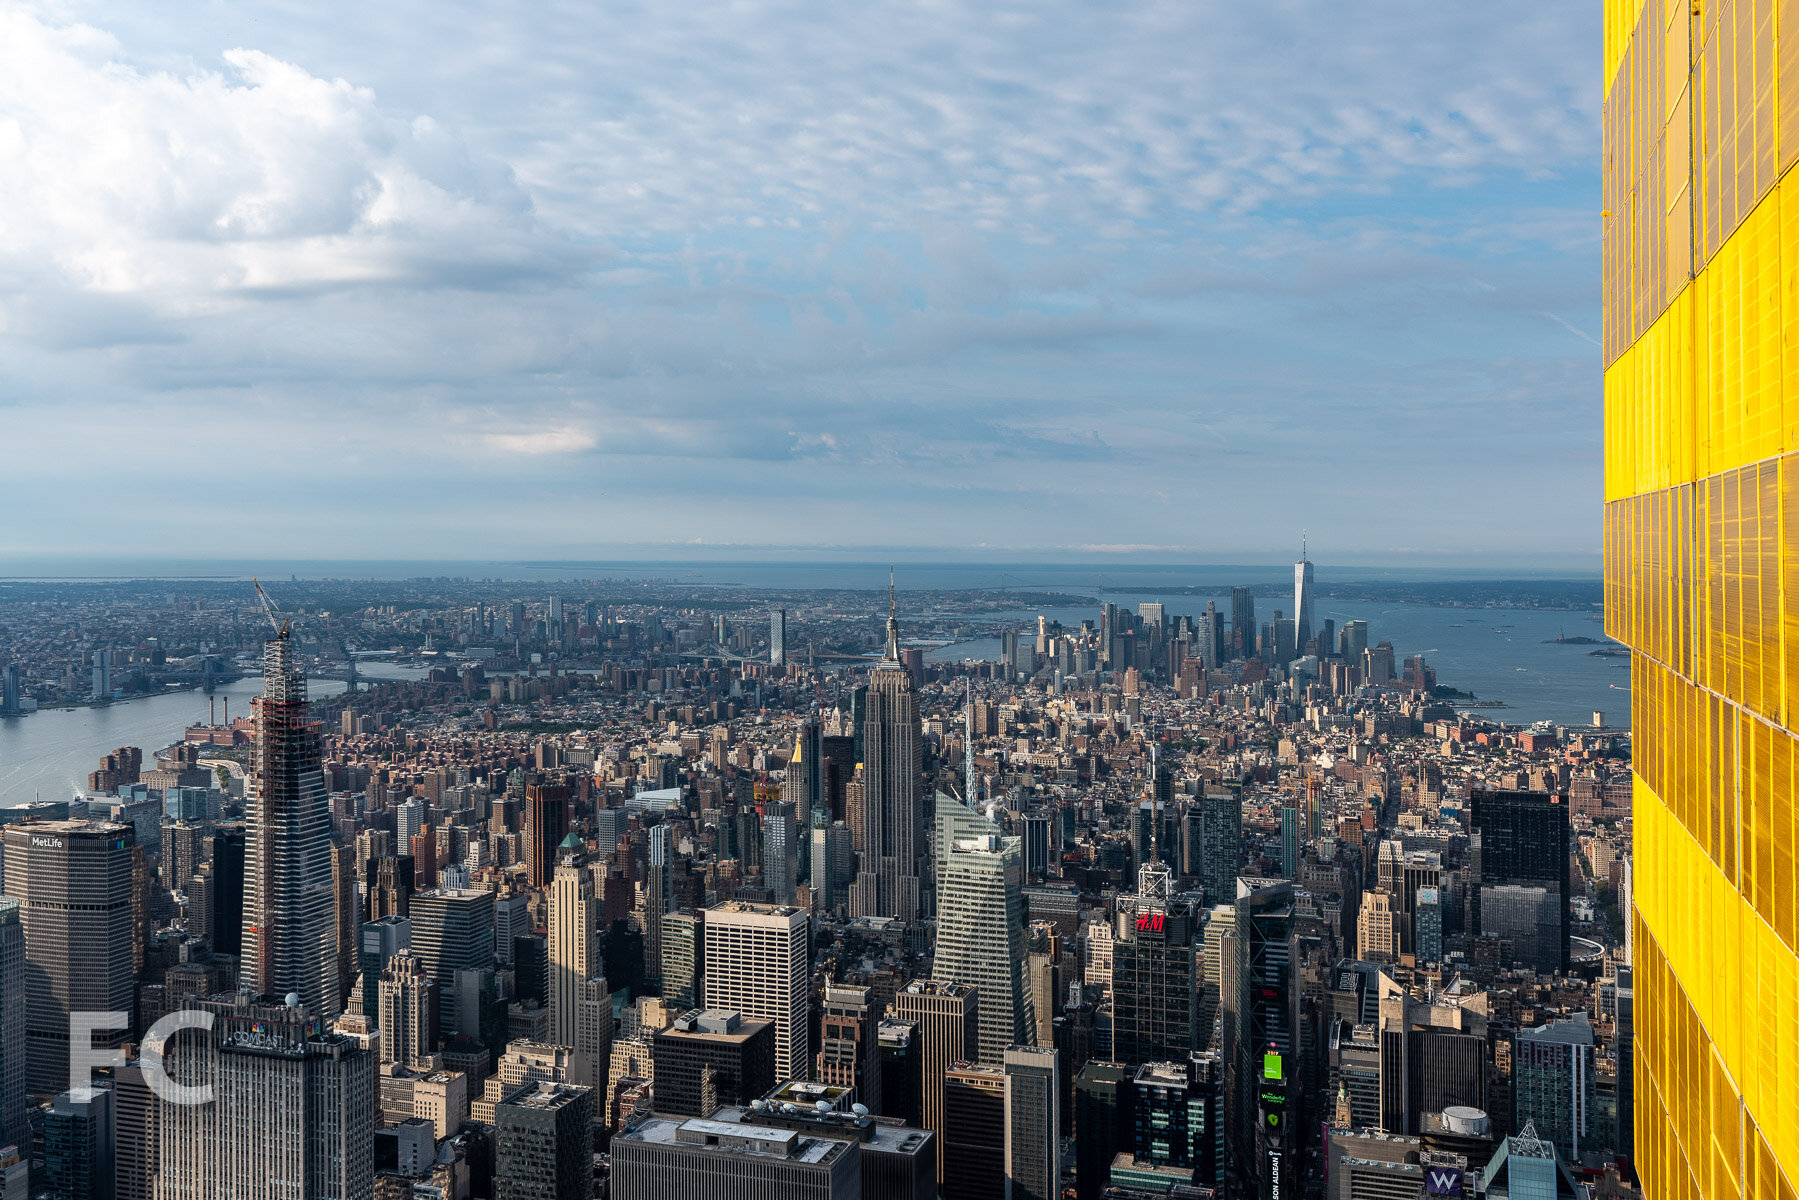 One Vanderbilt on the Midtown skyline, seen from the top of Central Park Tower.